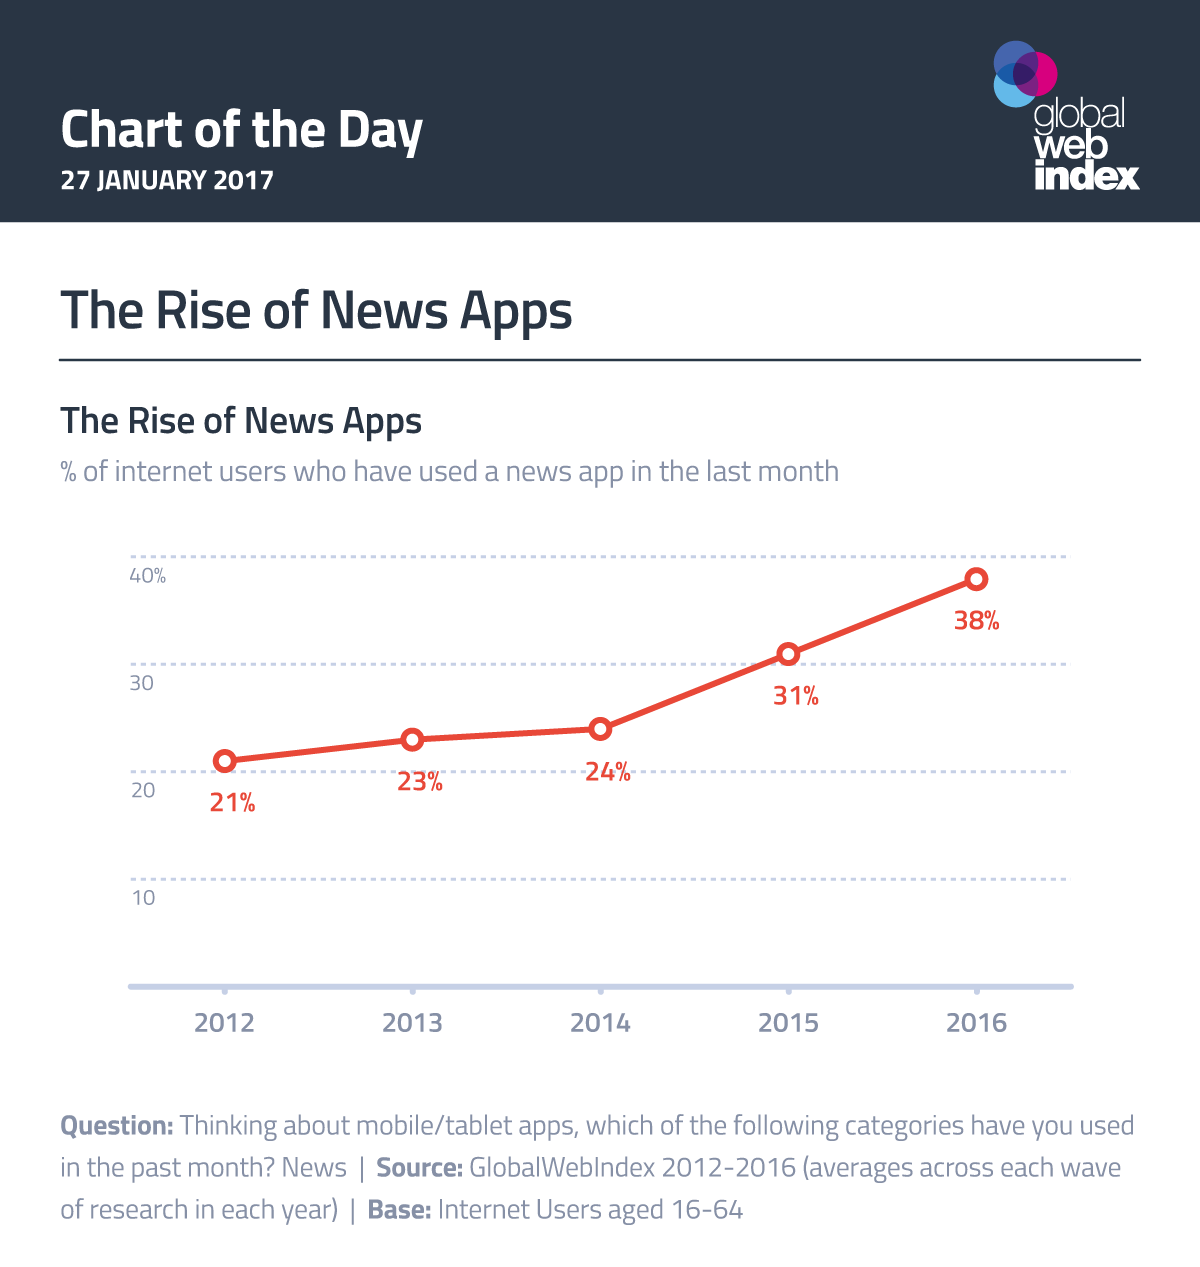 The Rise of News Apps